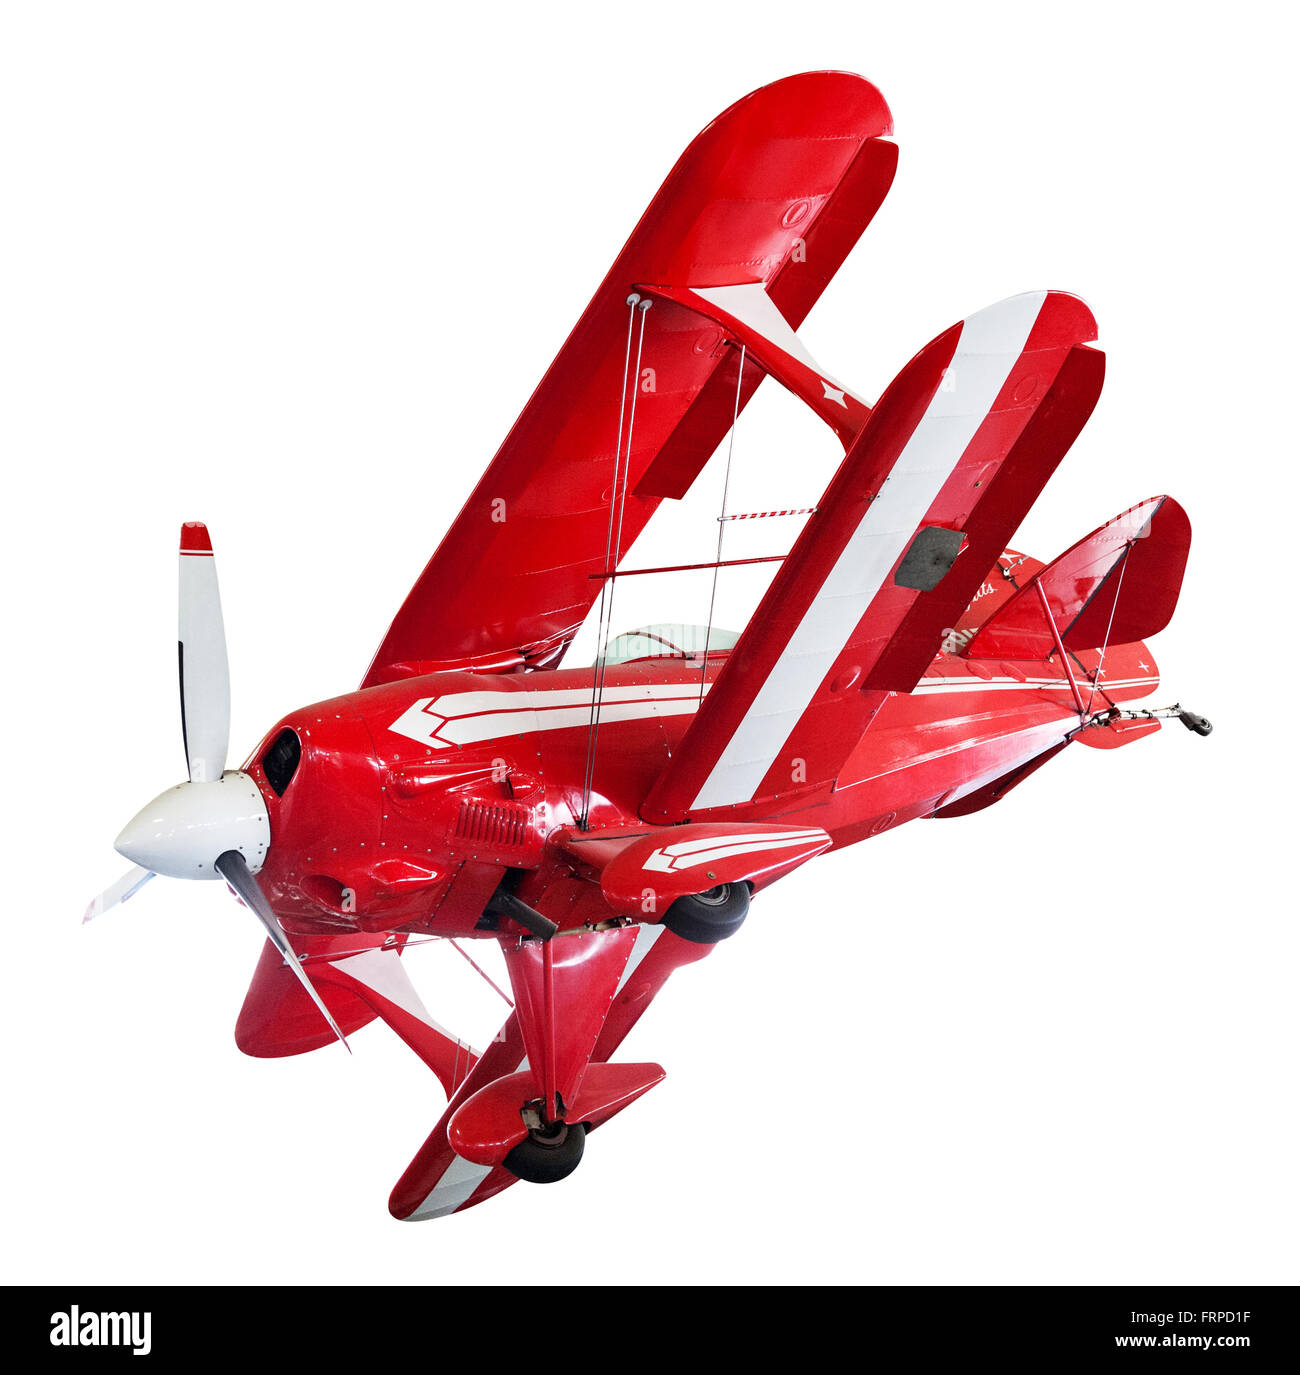 Vintage red and white bi-plane isolated on white positioned as though banking in flight Stock Photo